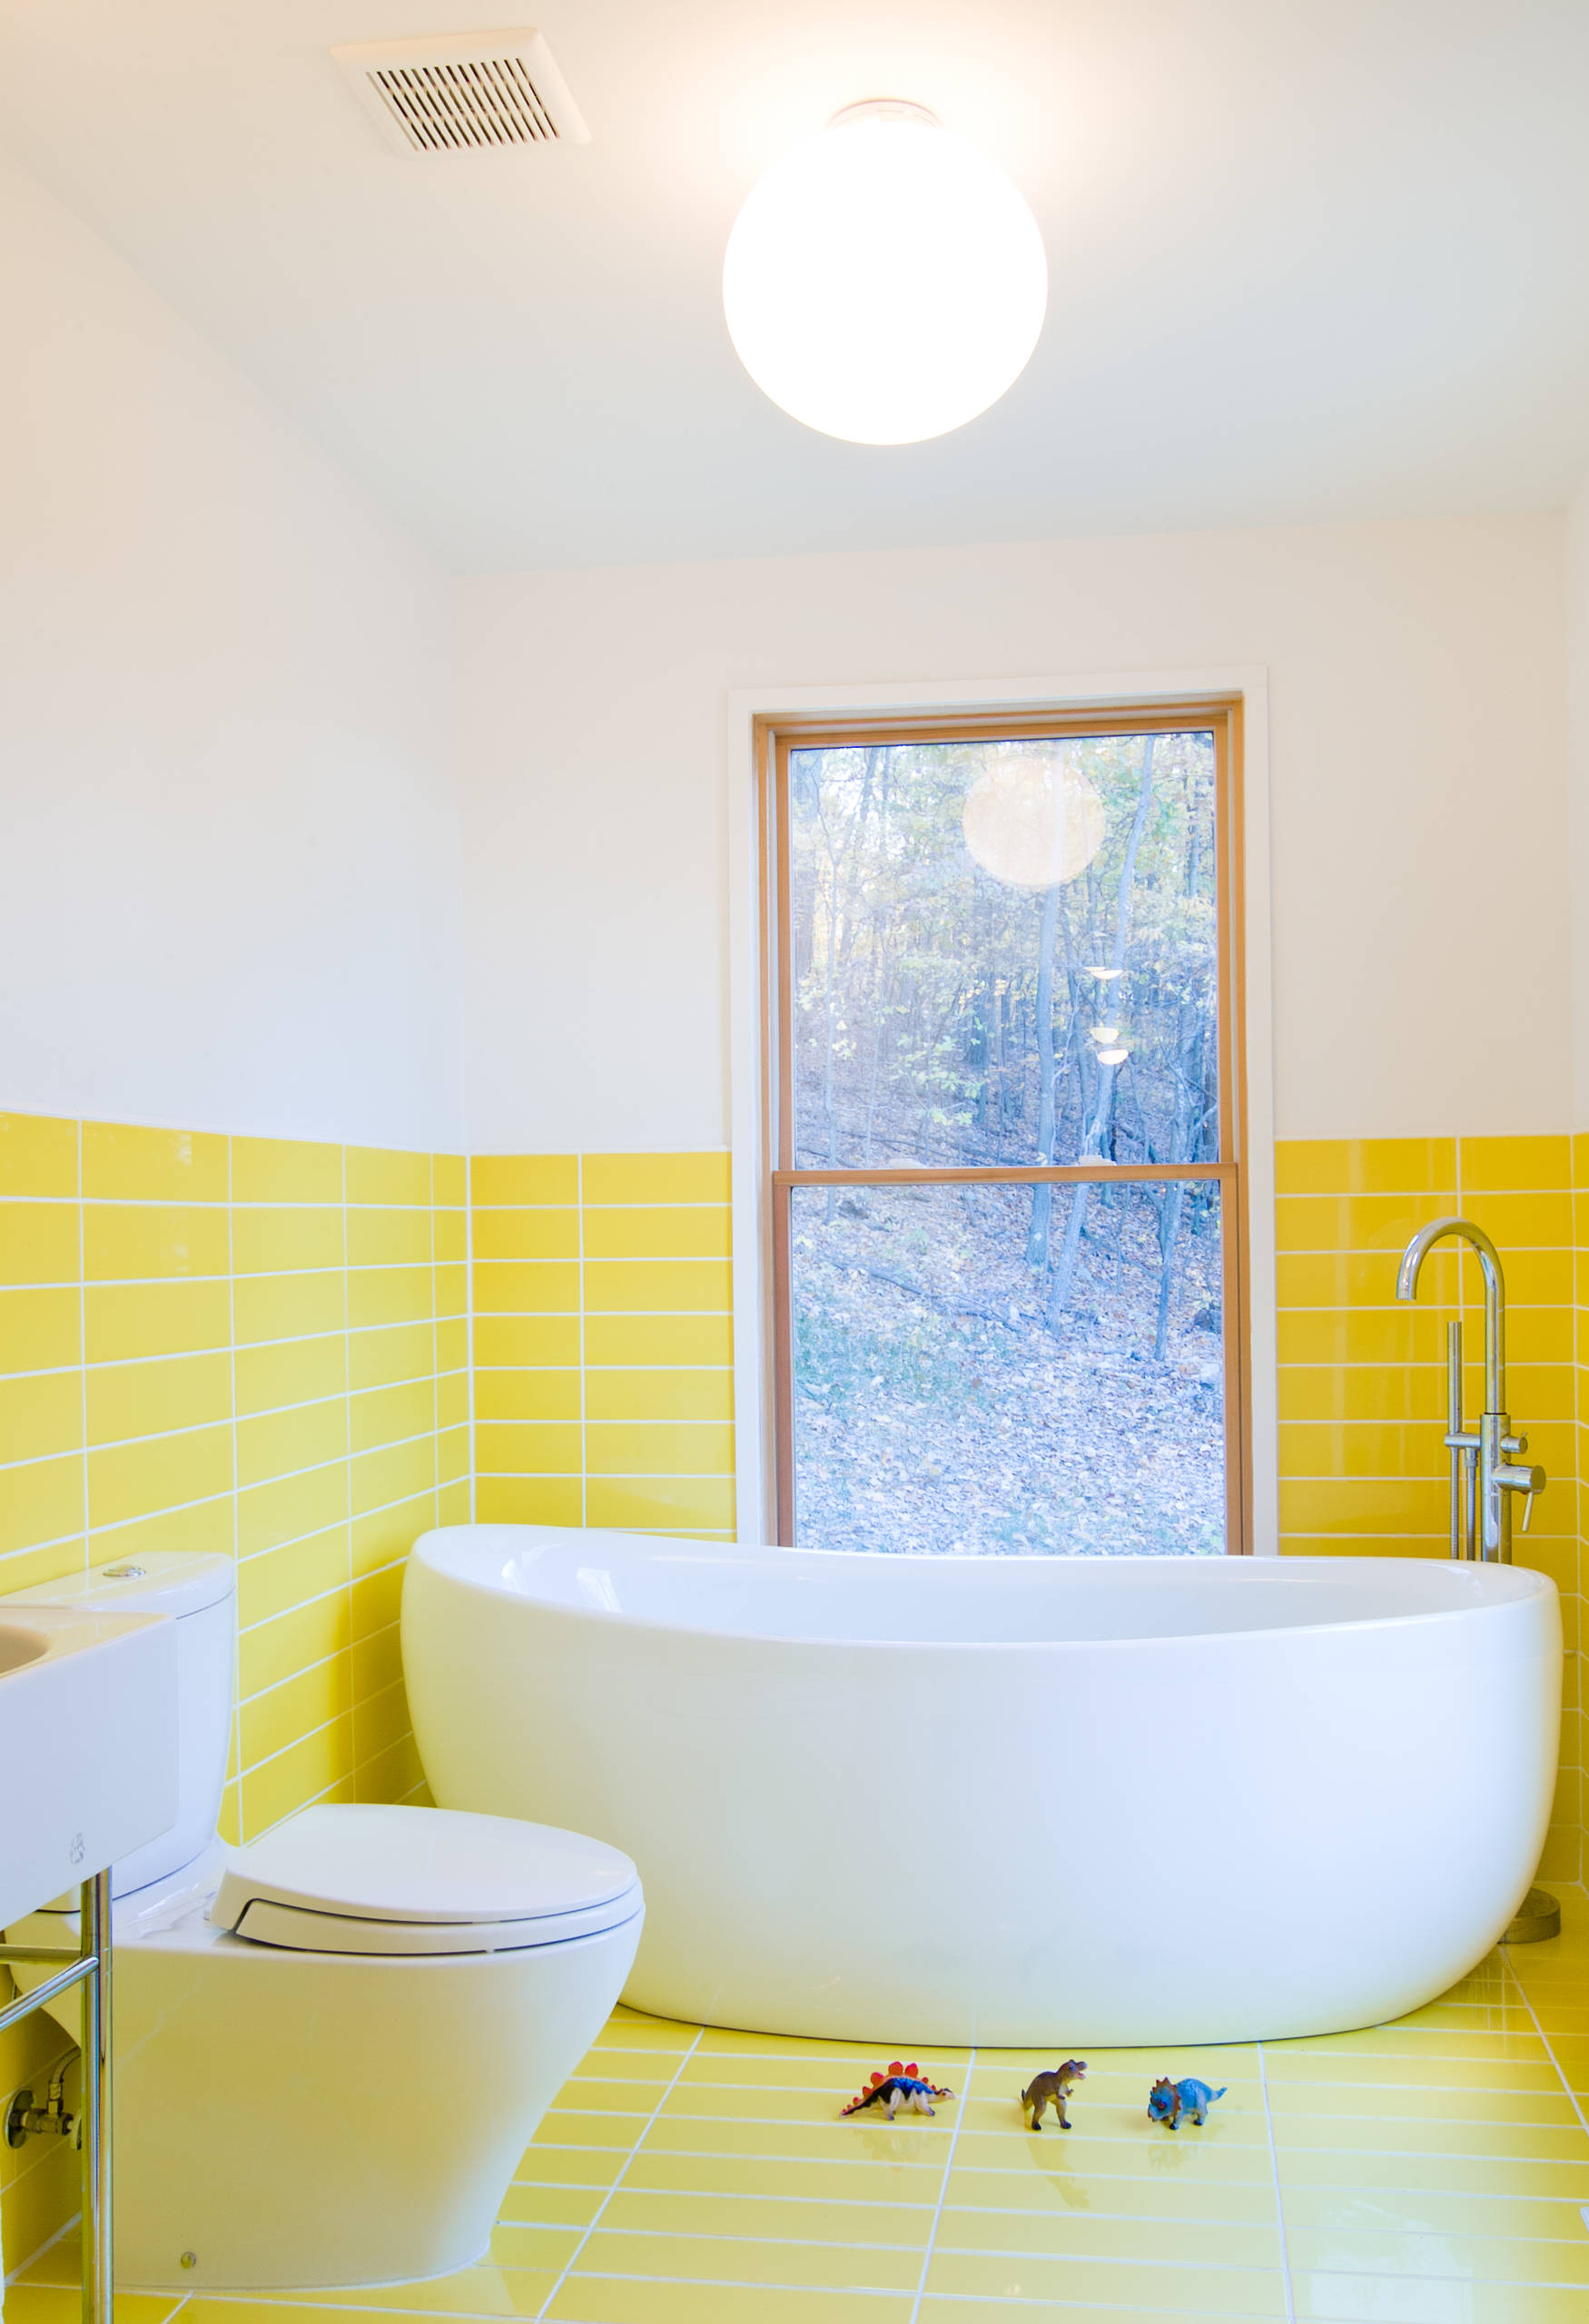 75 Beautiful Yellow Tile Bathroom Pictures Ideas April 2021 Houzz